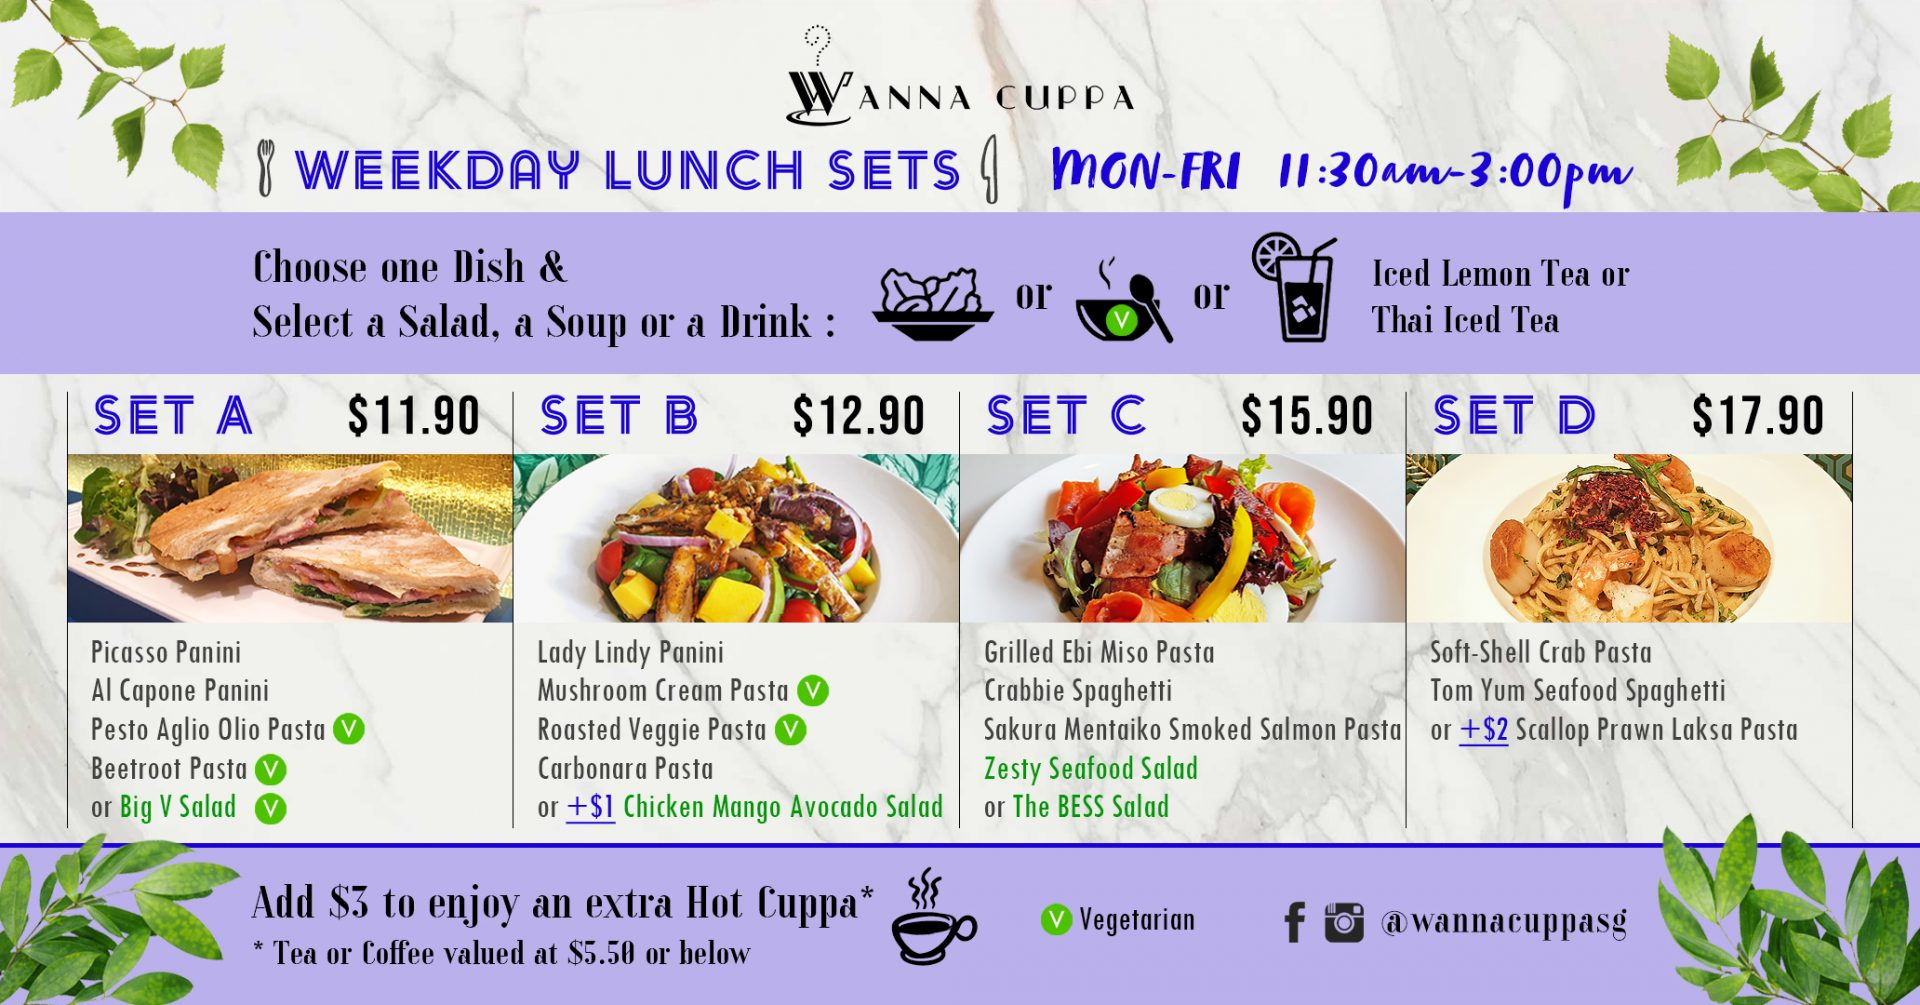 Weekday Lunch Sets are available from Monday to Friday from 11:30 am to 3:00 pm.